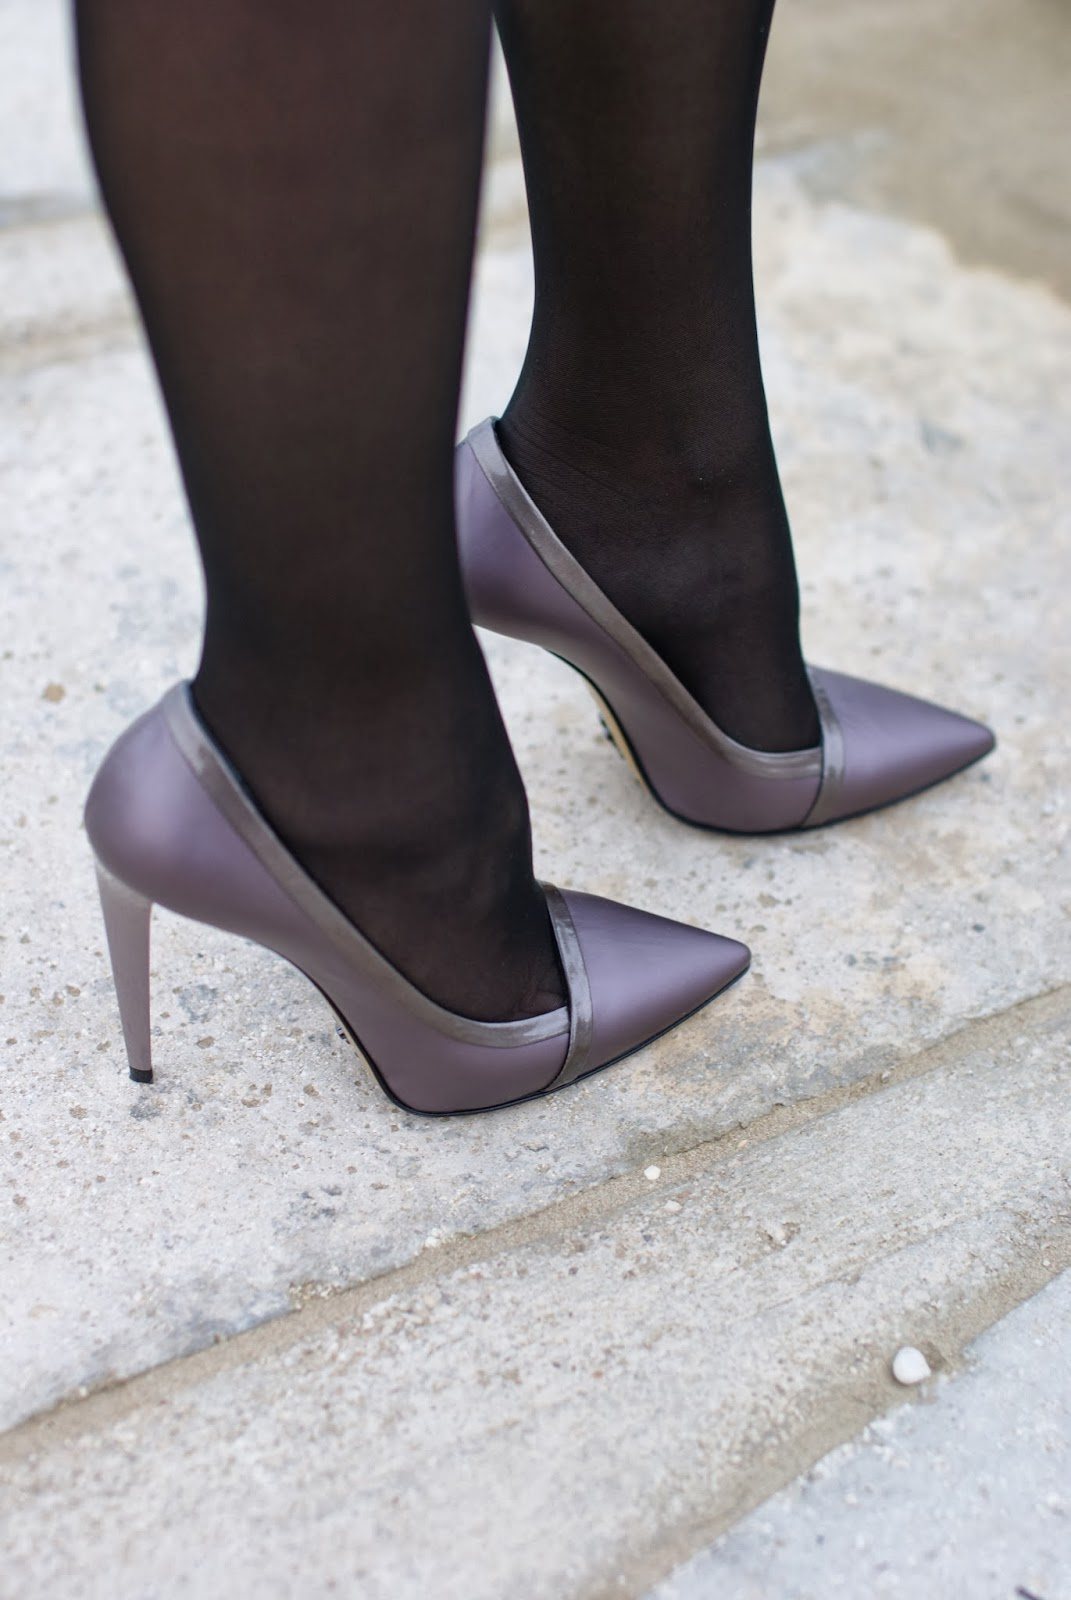 Fabi lilac pumps, Fashion and Cookies, fashion blogger